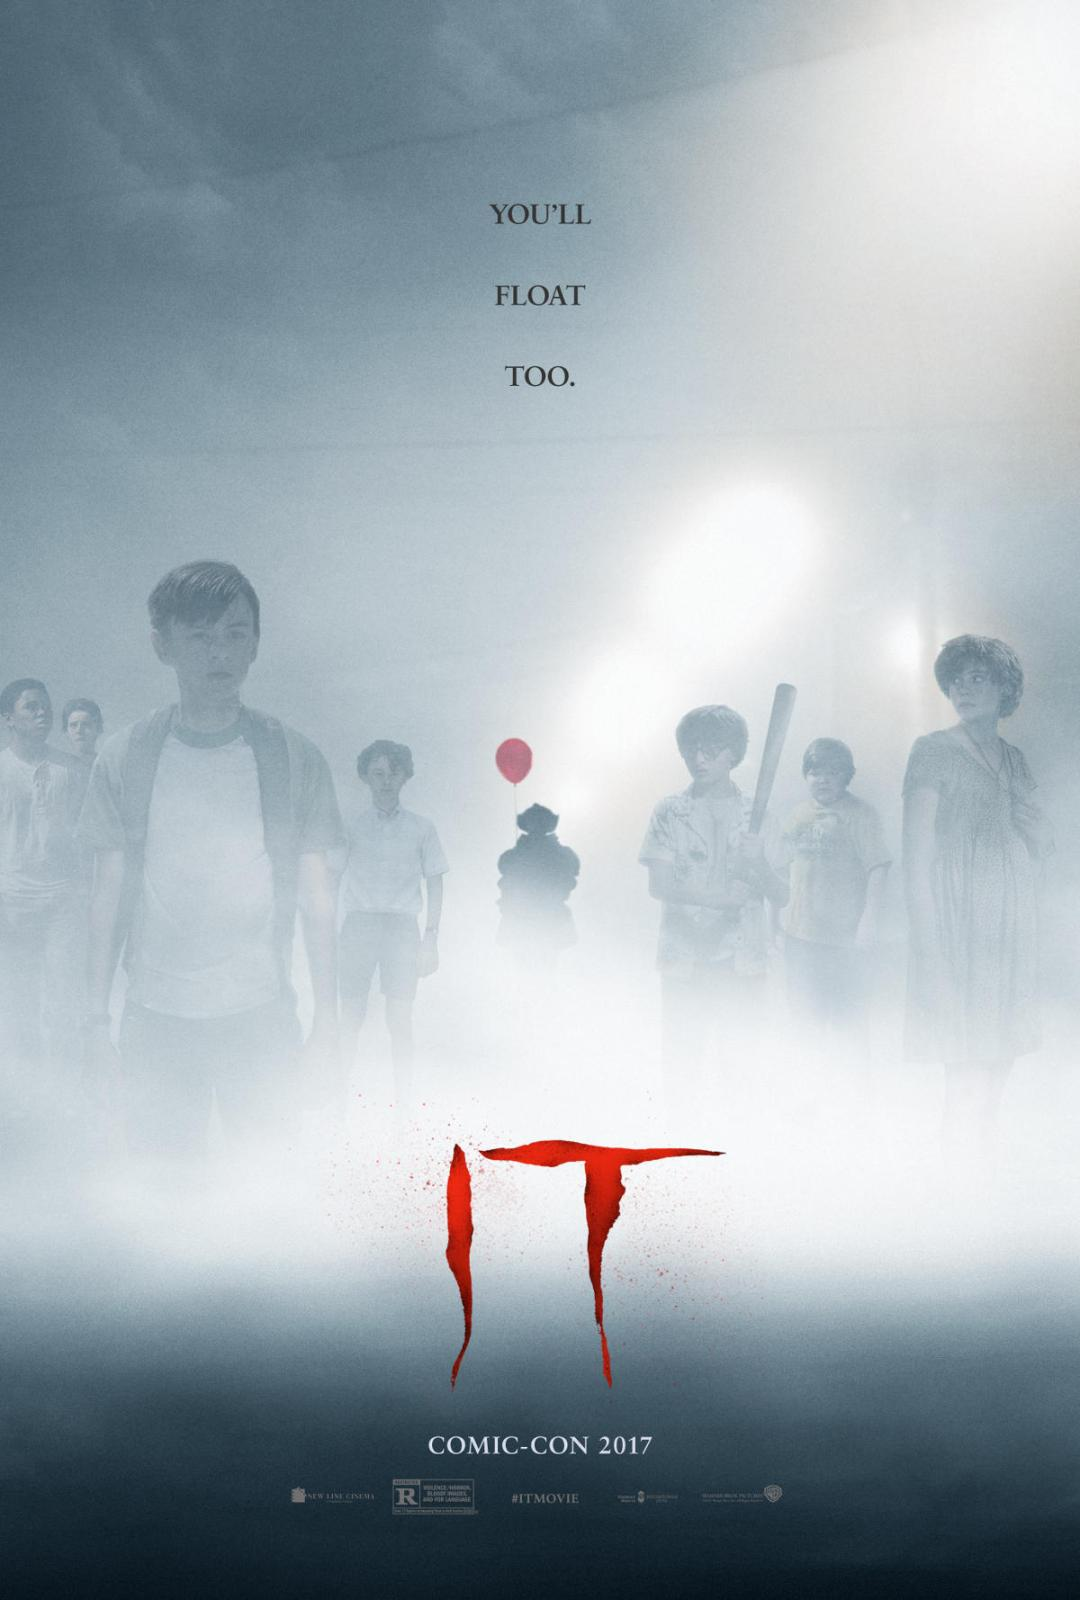 SDCC 2017: A New Poster is Out for 'It!'